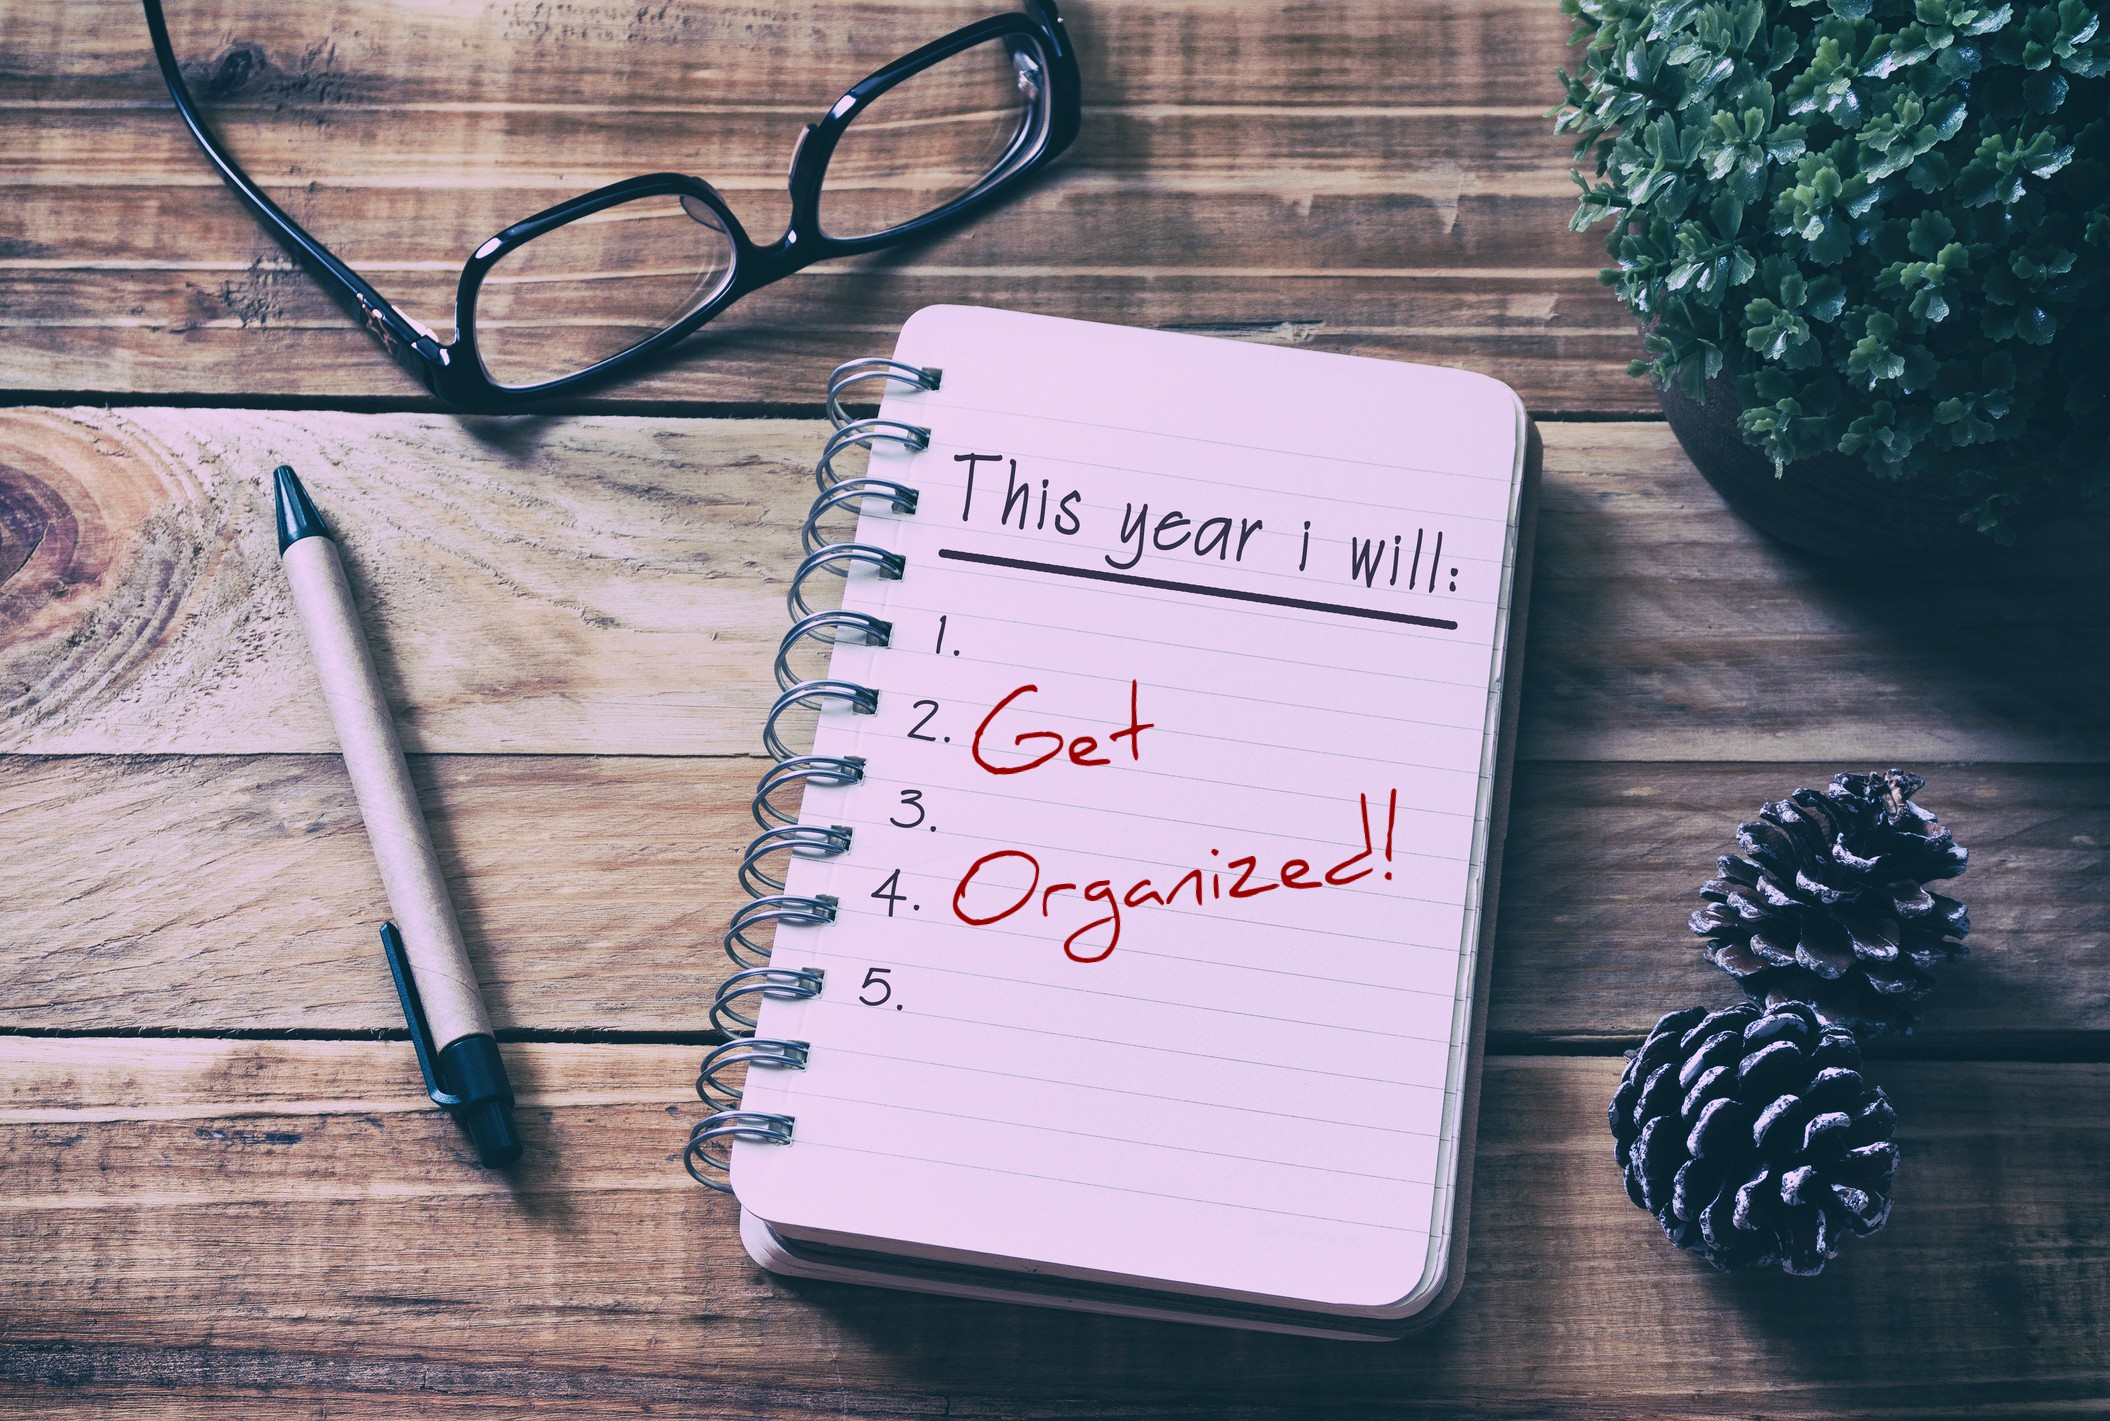 4. Get Organized - Famous last words, but that doesn't mean we don't know the quickest way to cleaning out closets and those catch-all spare rooms. The quickest way to organize and de-clutter is to order new flooring. You'll have about two weeks to clear out furnishings and closets before our installers arrive. Ahhhh, we do get it, and that's why we also provide services for this very thing - moving.